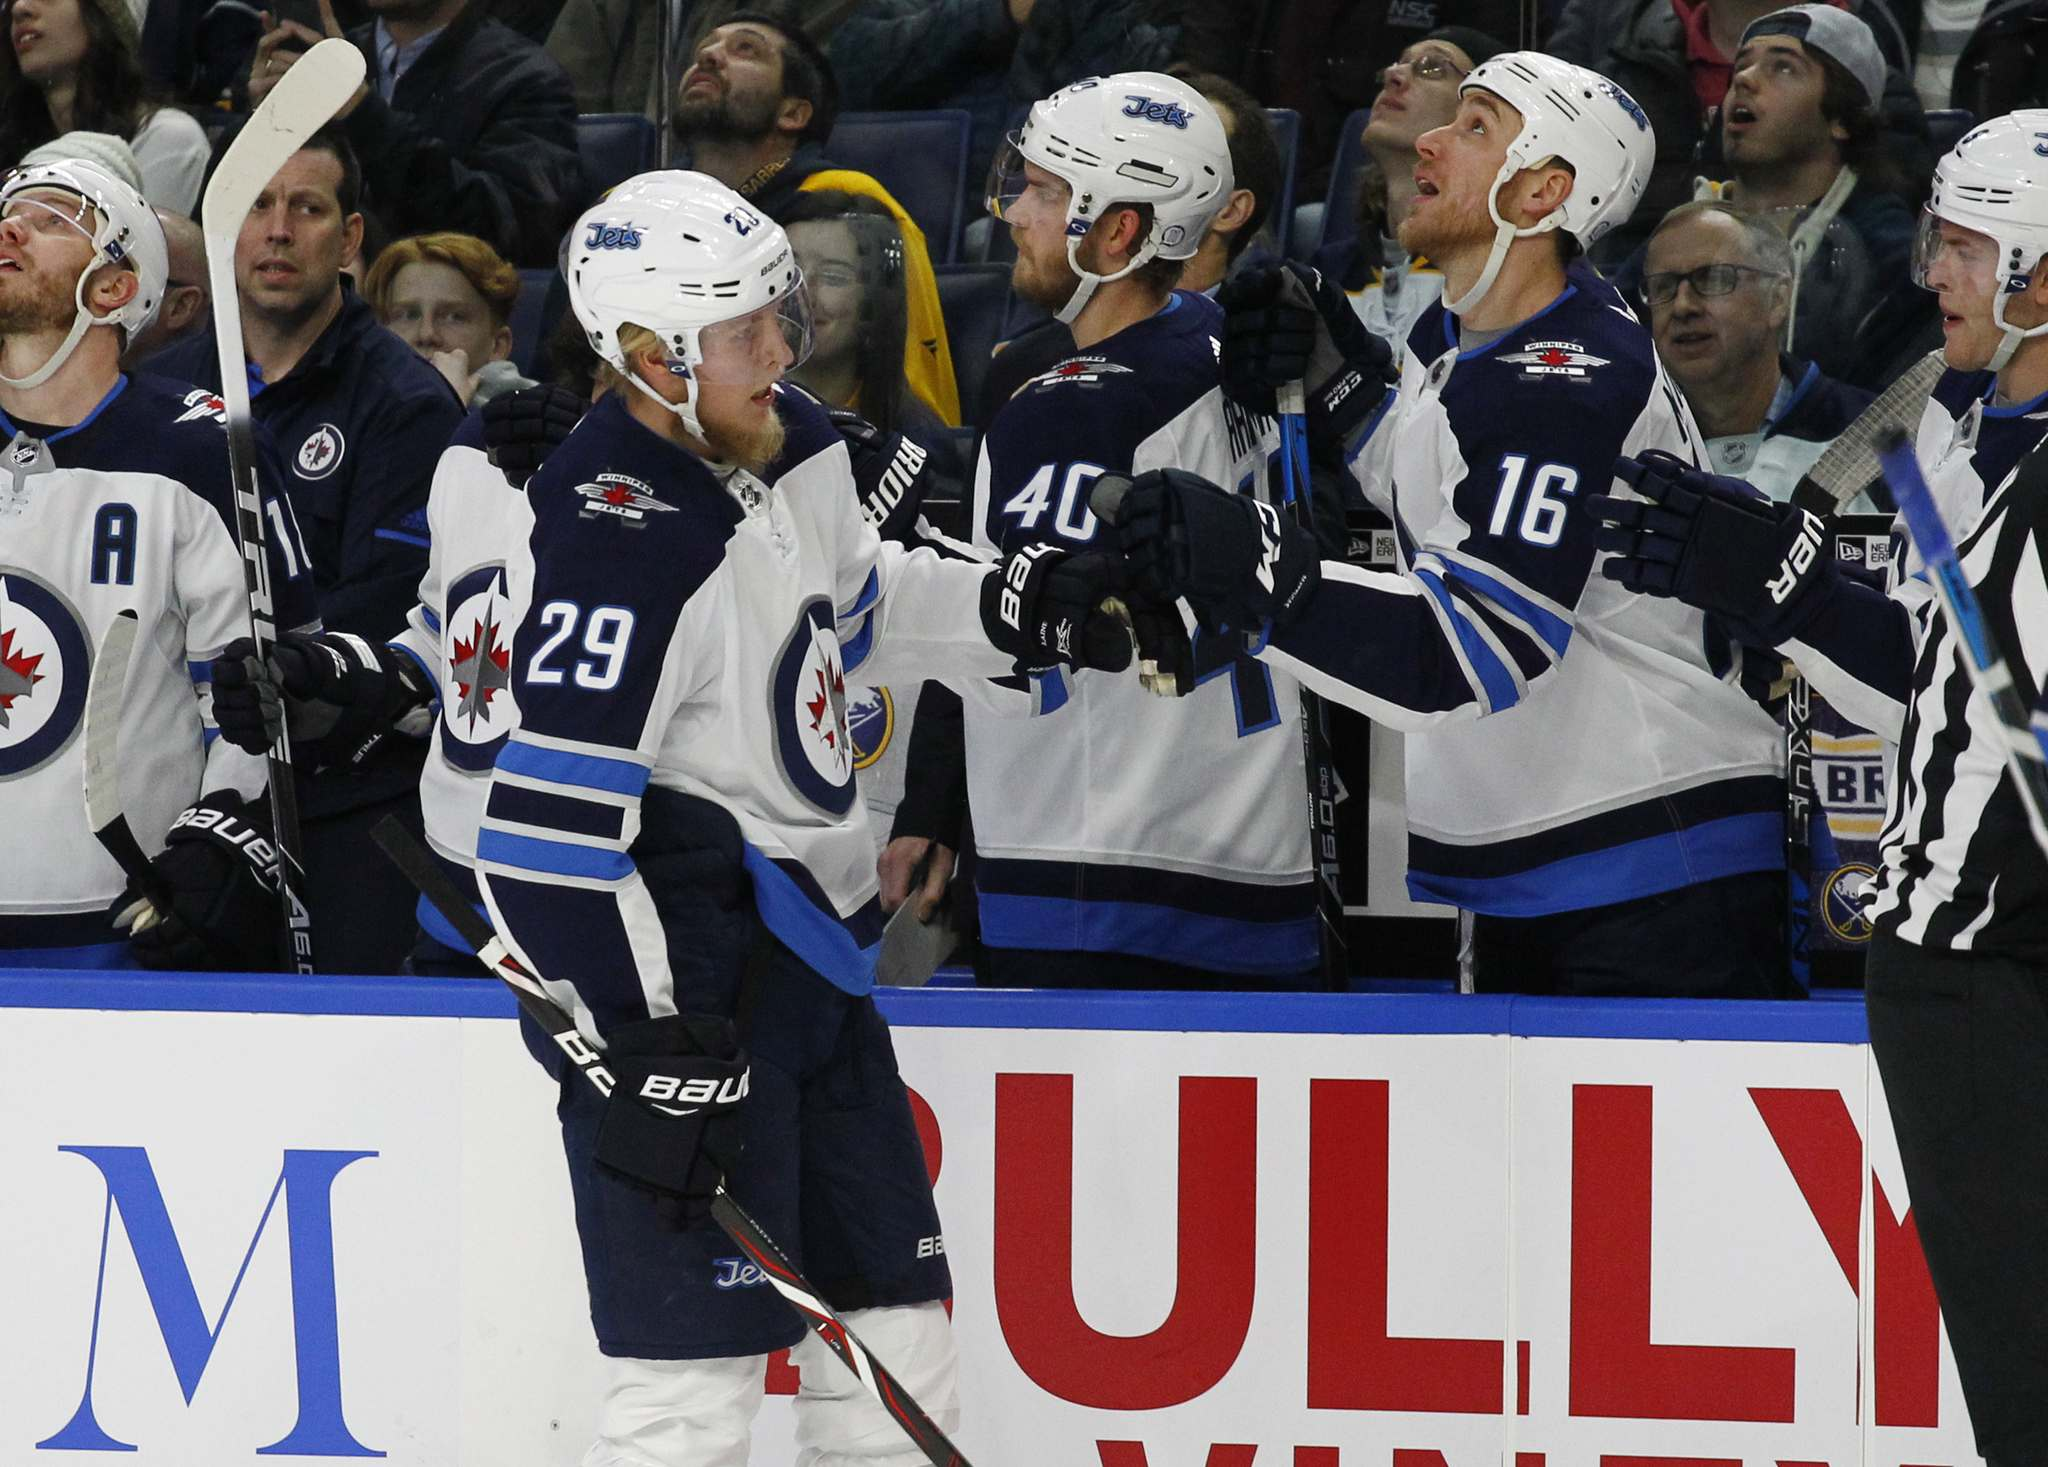 Jeffrey T. Barnes / The Associated Press</p><p>Winnipeg Jets forward Patrik Laine (29) celebrates his goal with teammates during the first period of an NHL hockey game against the Buffalo Sabres, Tuesday, Jan. 9, 2018, in Buffalo, N.Y.</p>